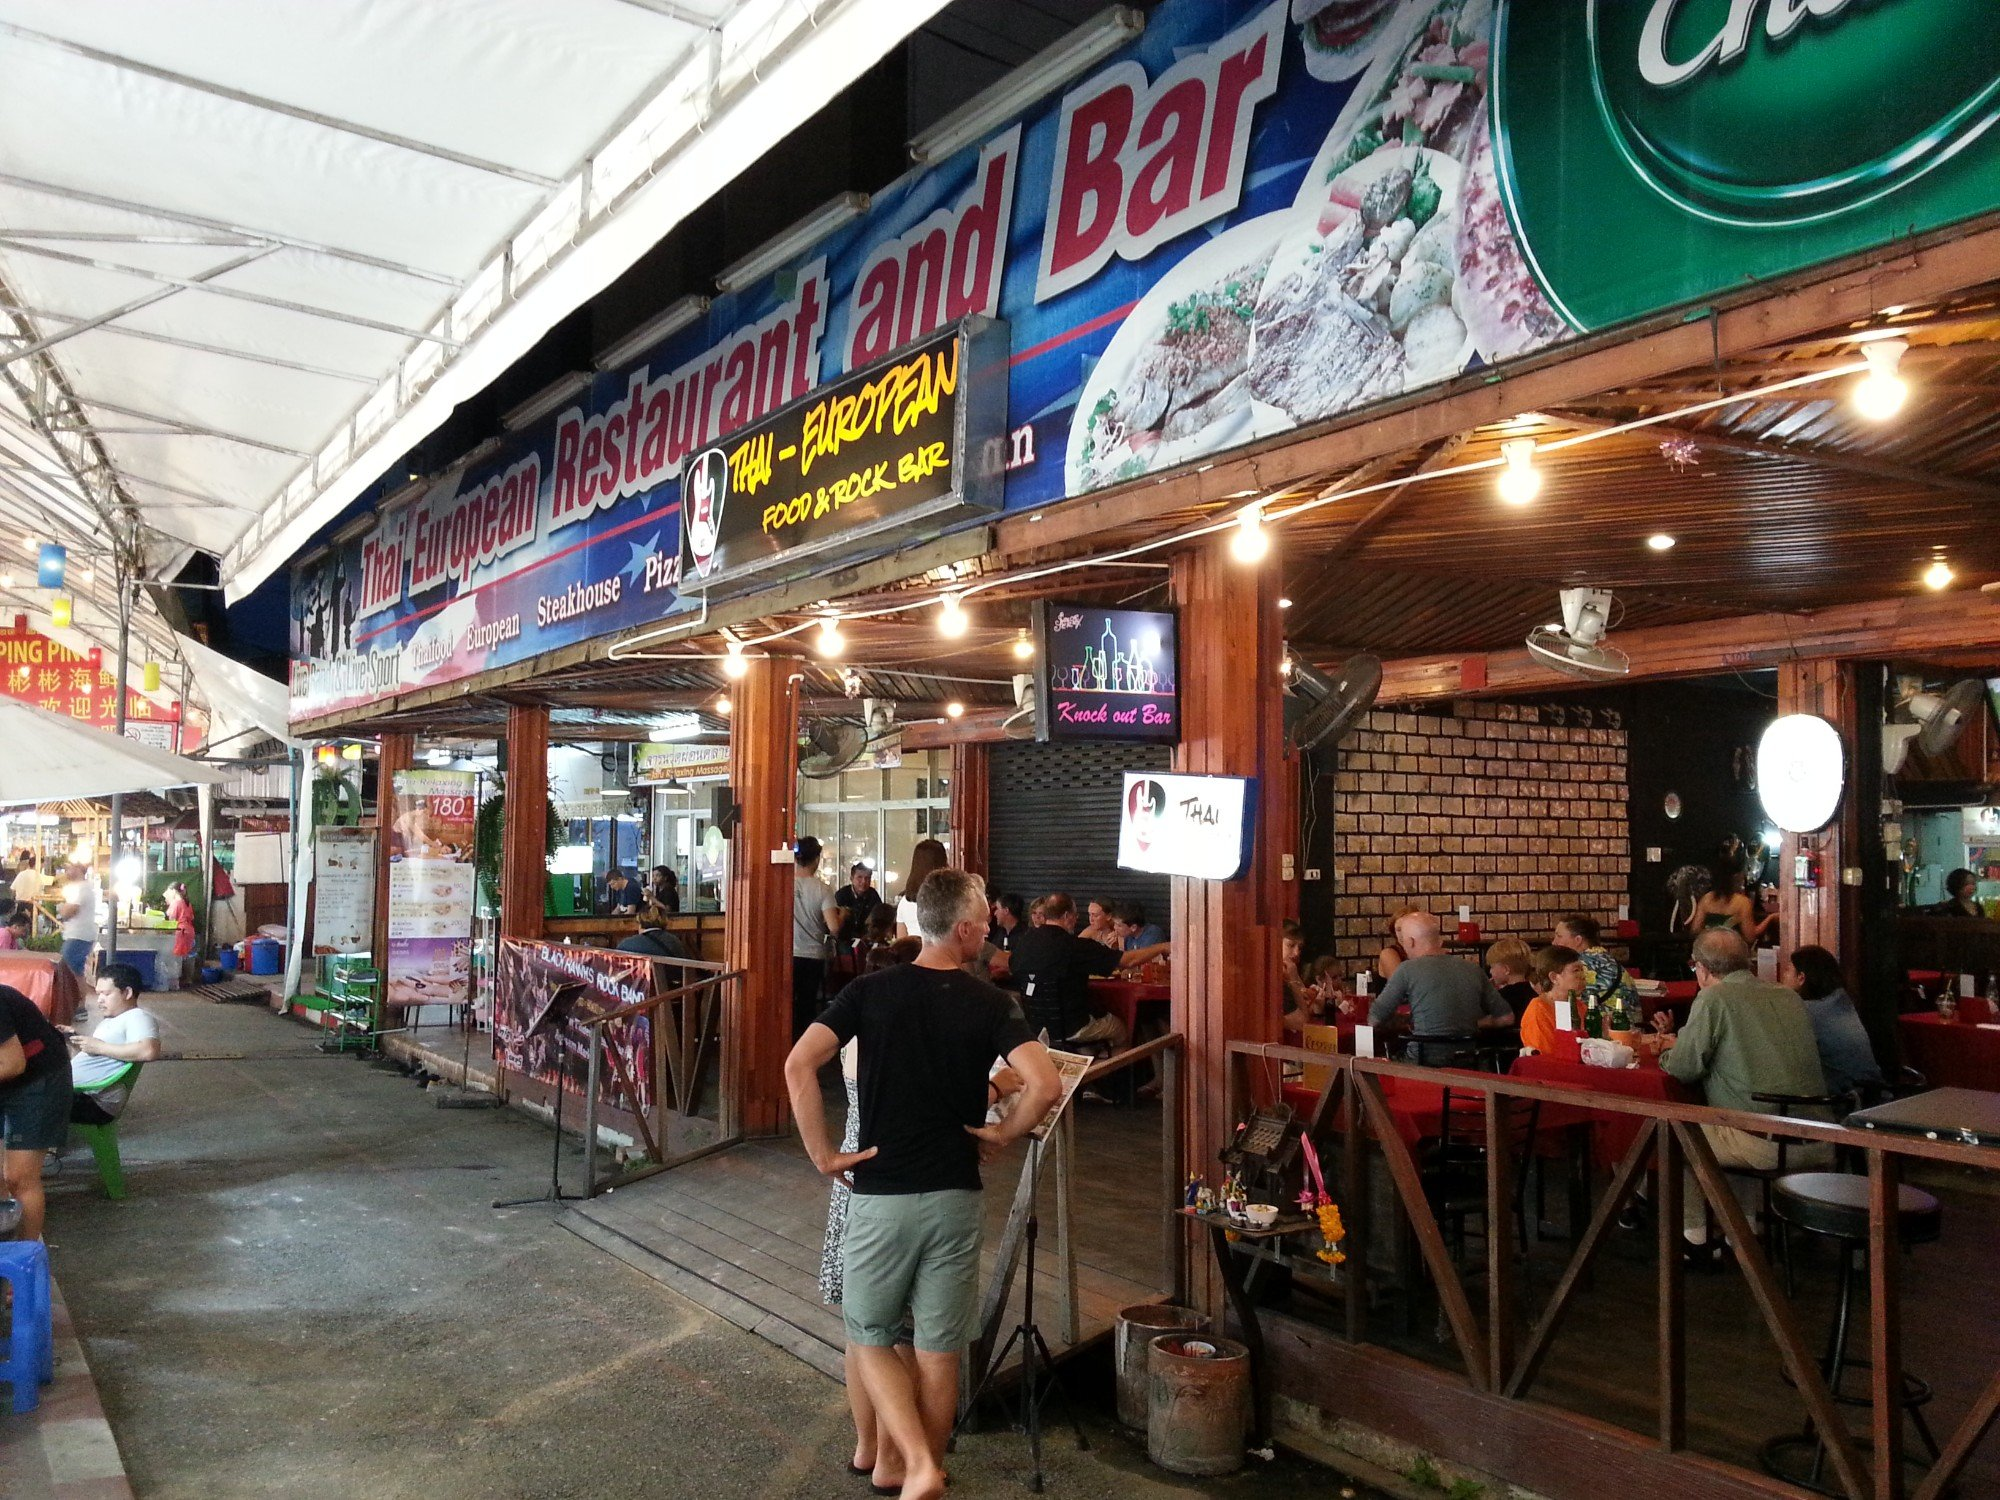 Western style bar and restaurant at Anusarn Market